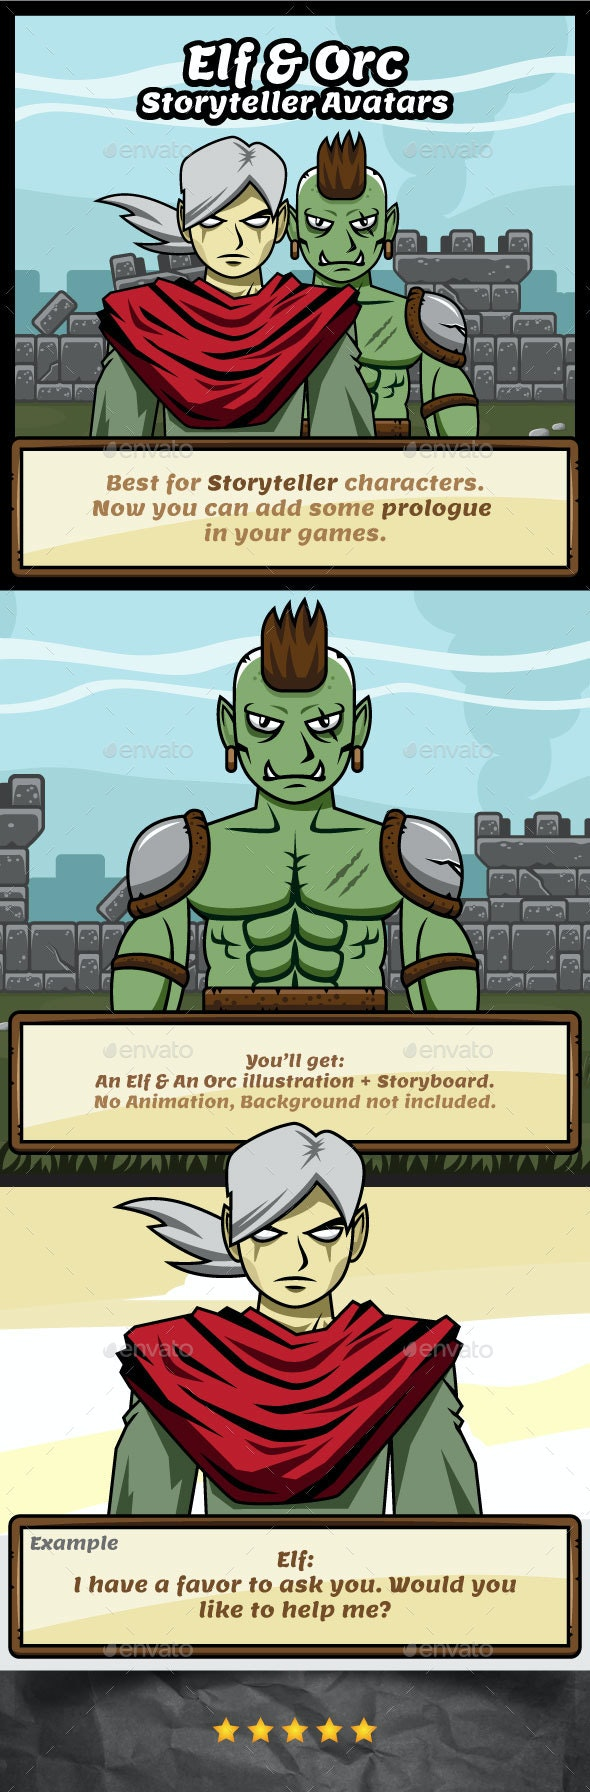 Elf and Orc The Storyteller Avatars for Game Prologue